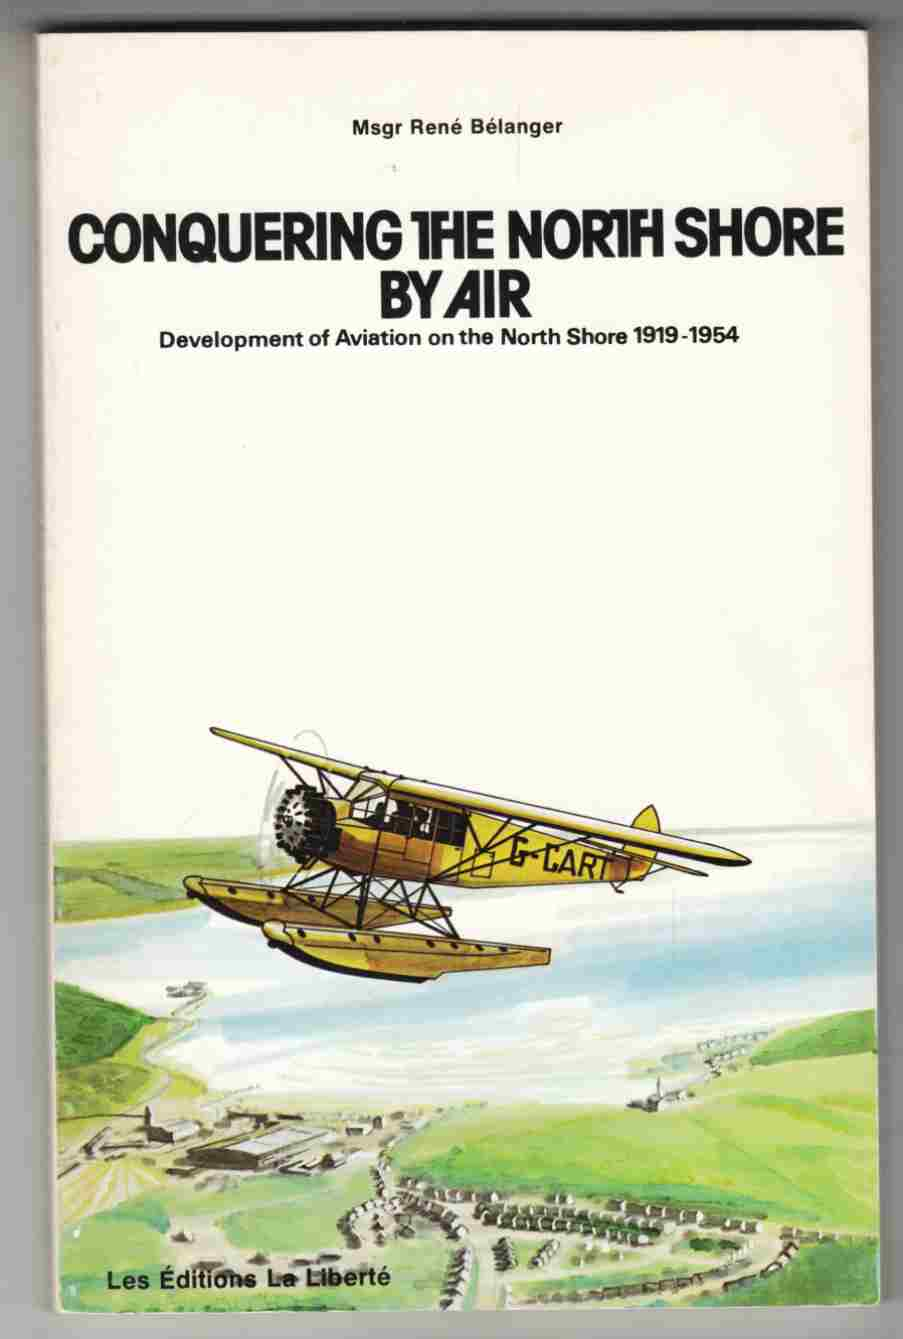 Image for Conquering the North Shore by Air Development of Aviation on the North Shore 1919-1954